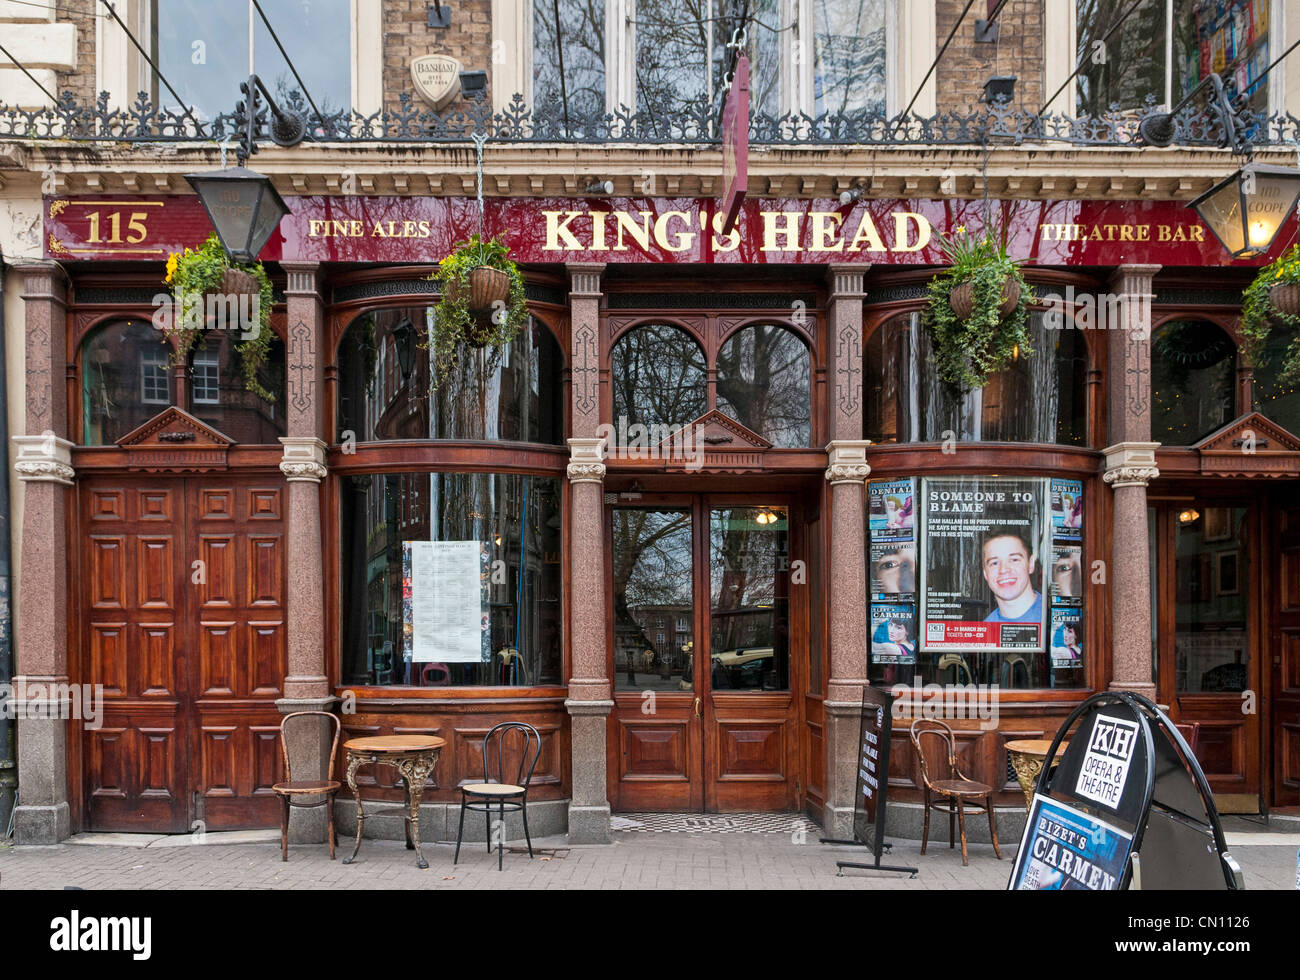 Kings Head pub, Islington, London, UK - Stock Image